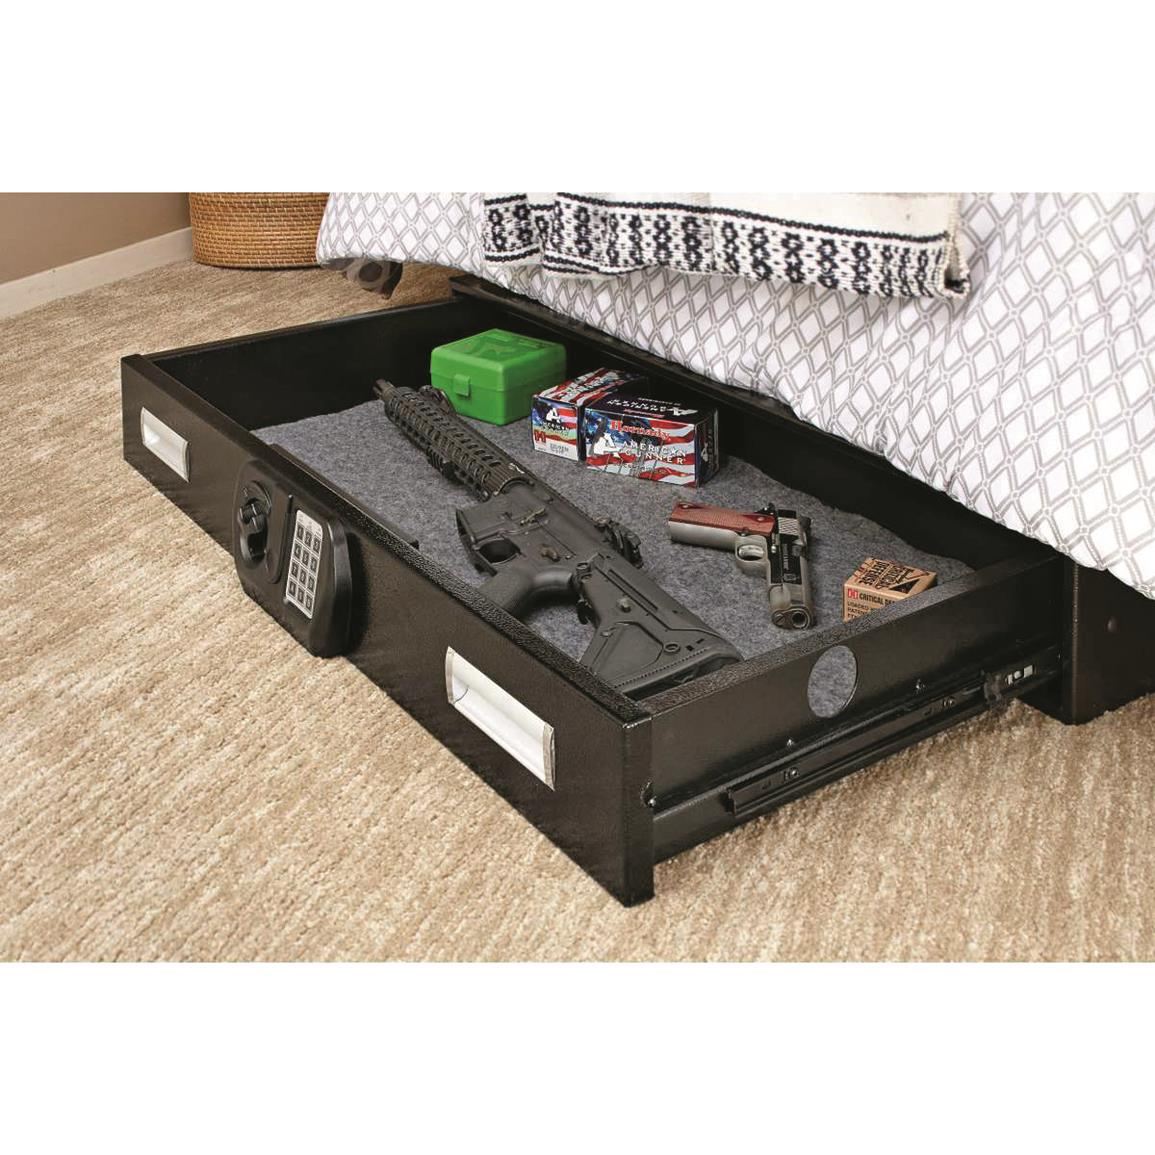 Slide Out Drawer Accommodates A Wide Variety Of Items